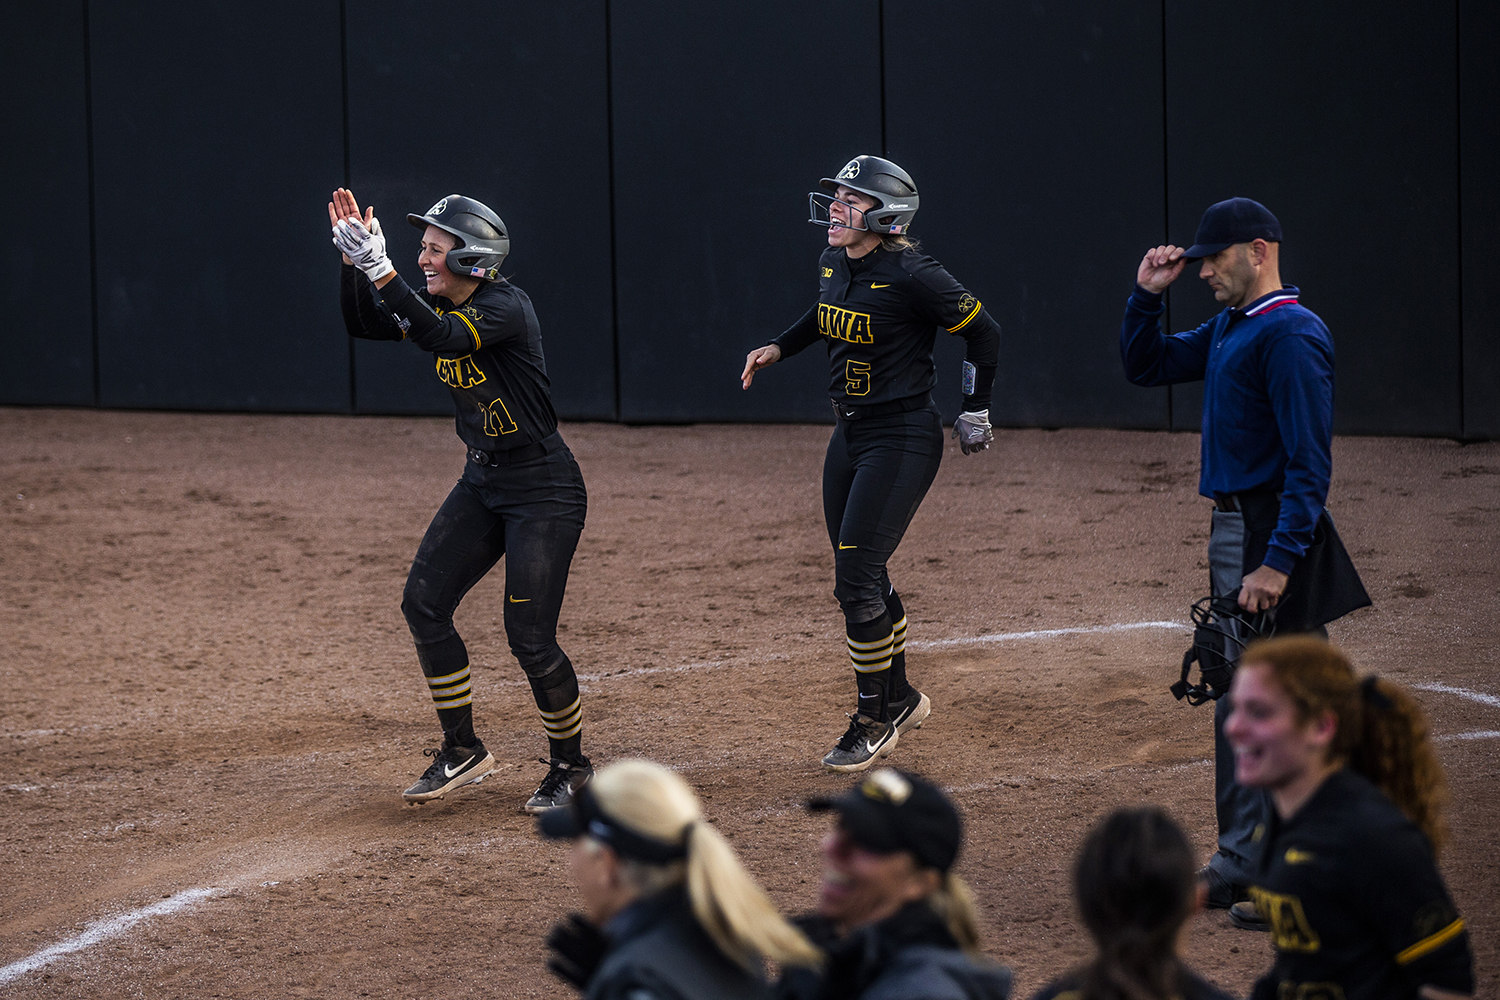 Iowa pitcher Mallory Kilian and infielder Sydney Owens cheer after Iowa scores the winning run during the game against Illinois at the Bob Pearl Softball Field on Saturday, April 13, 2019. The Hawkeyes defeated the Fighting Illini 4-3.